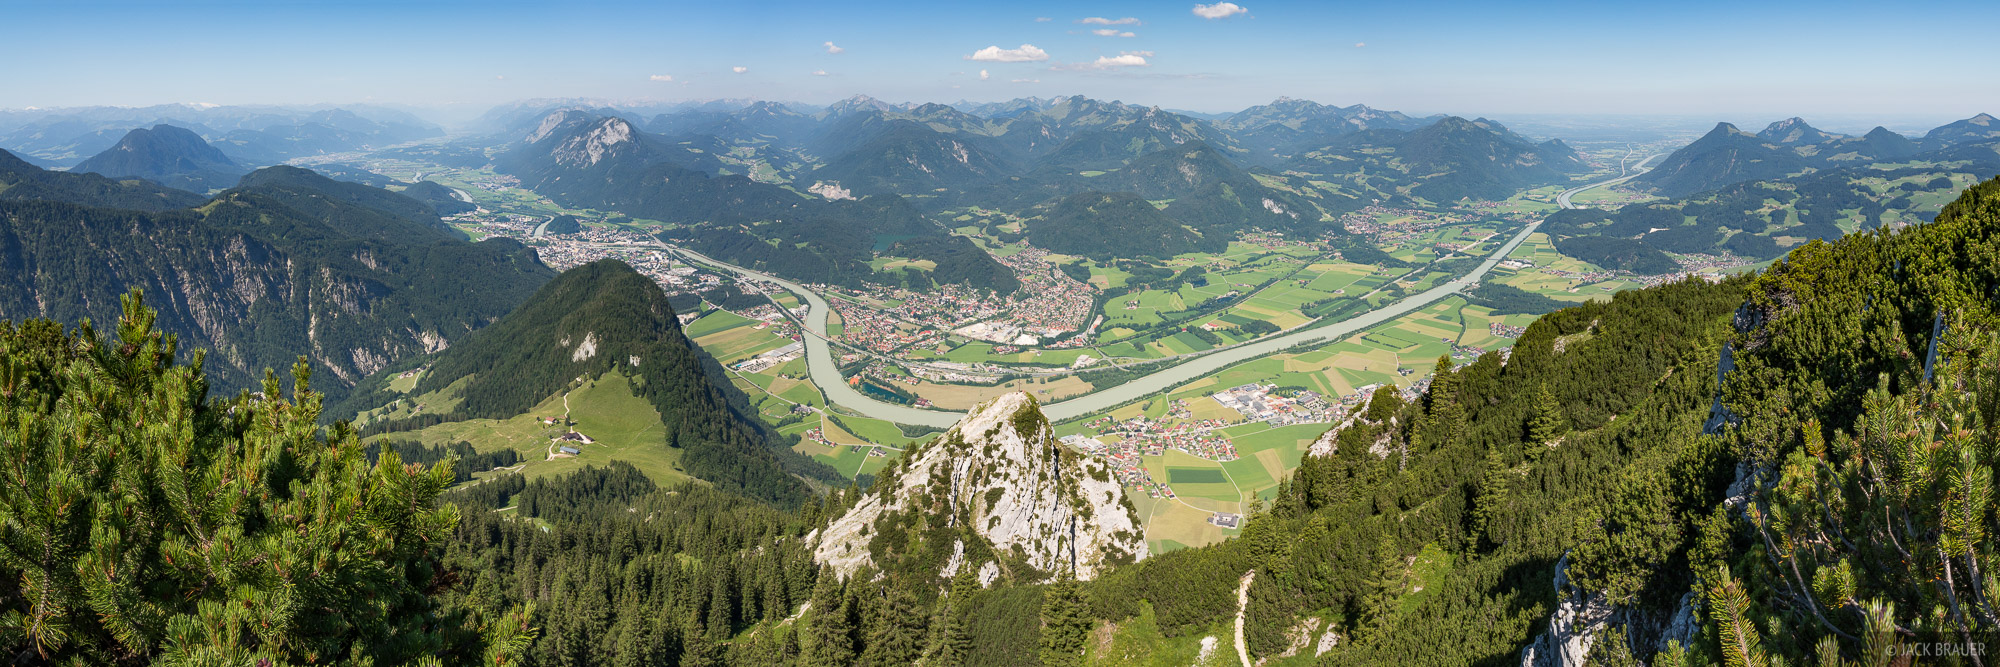 Austria, Kaisergebirge, Kufstein, Peterskopfl, panorama, photo